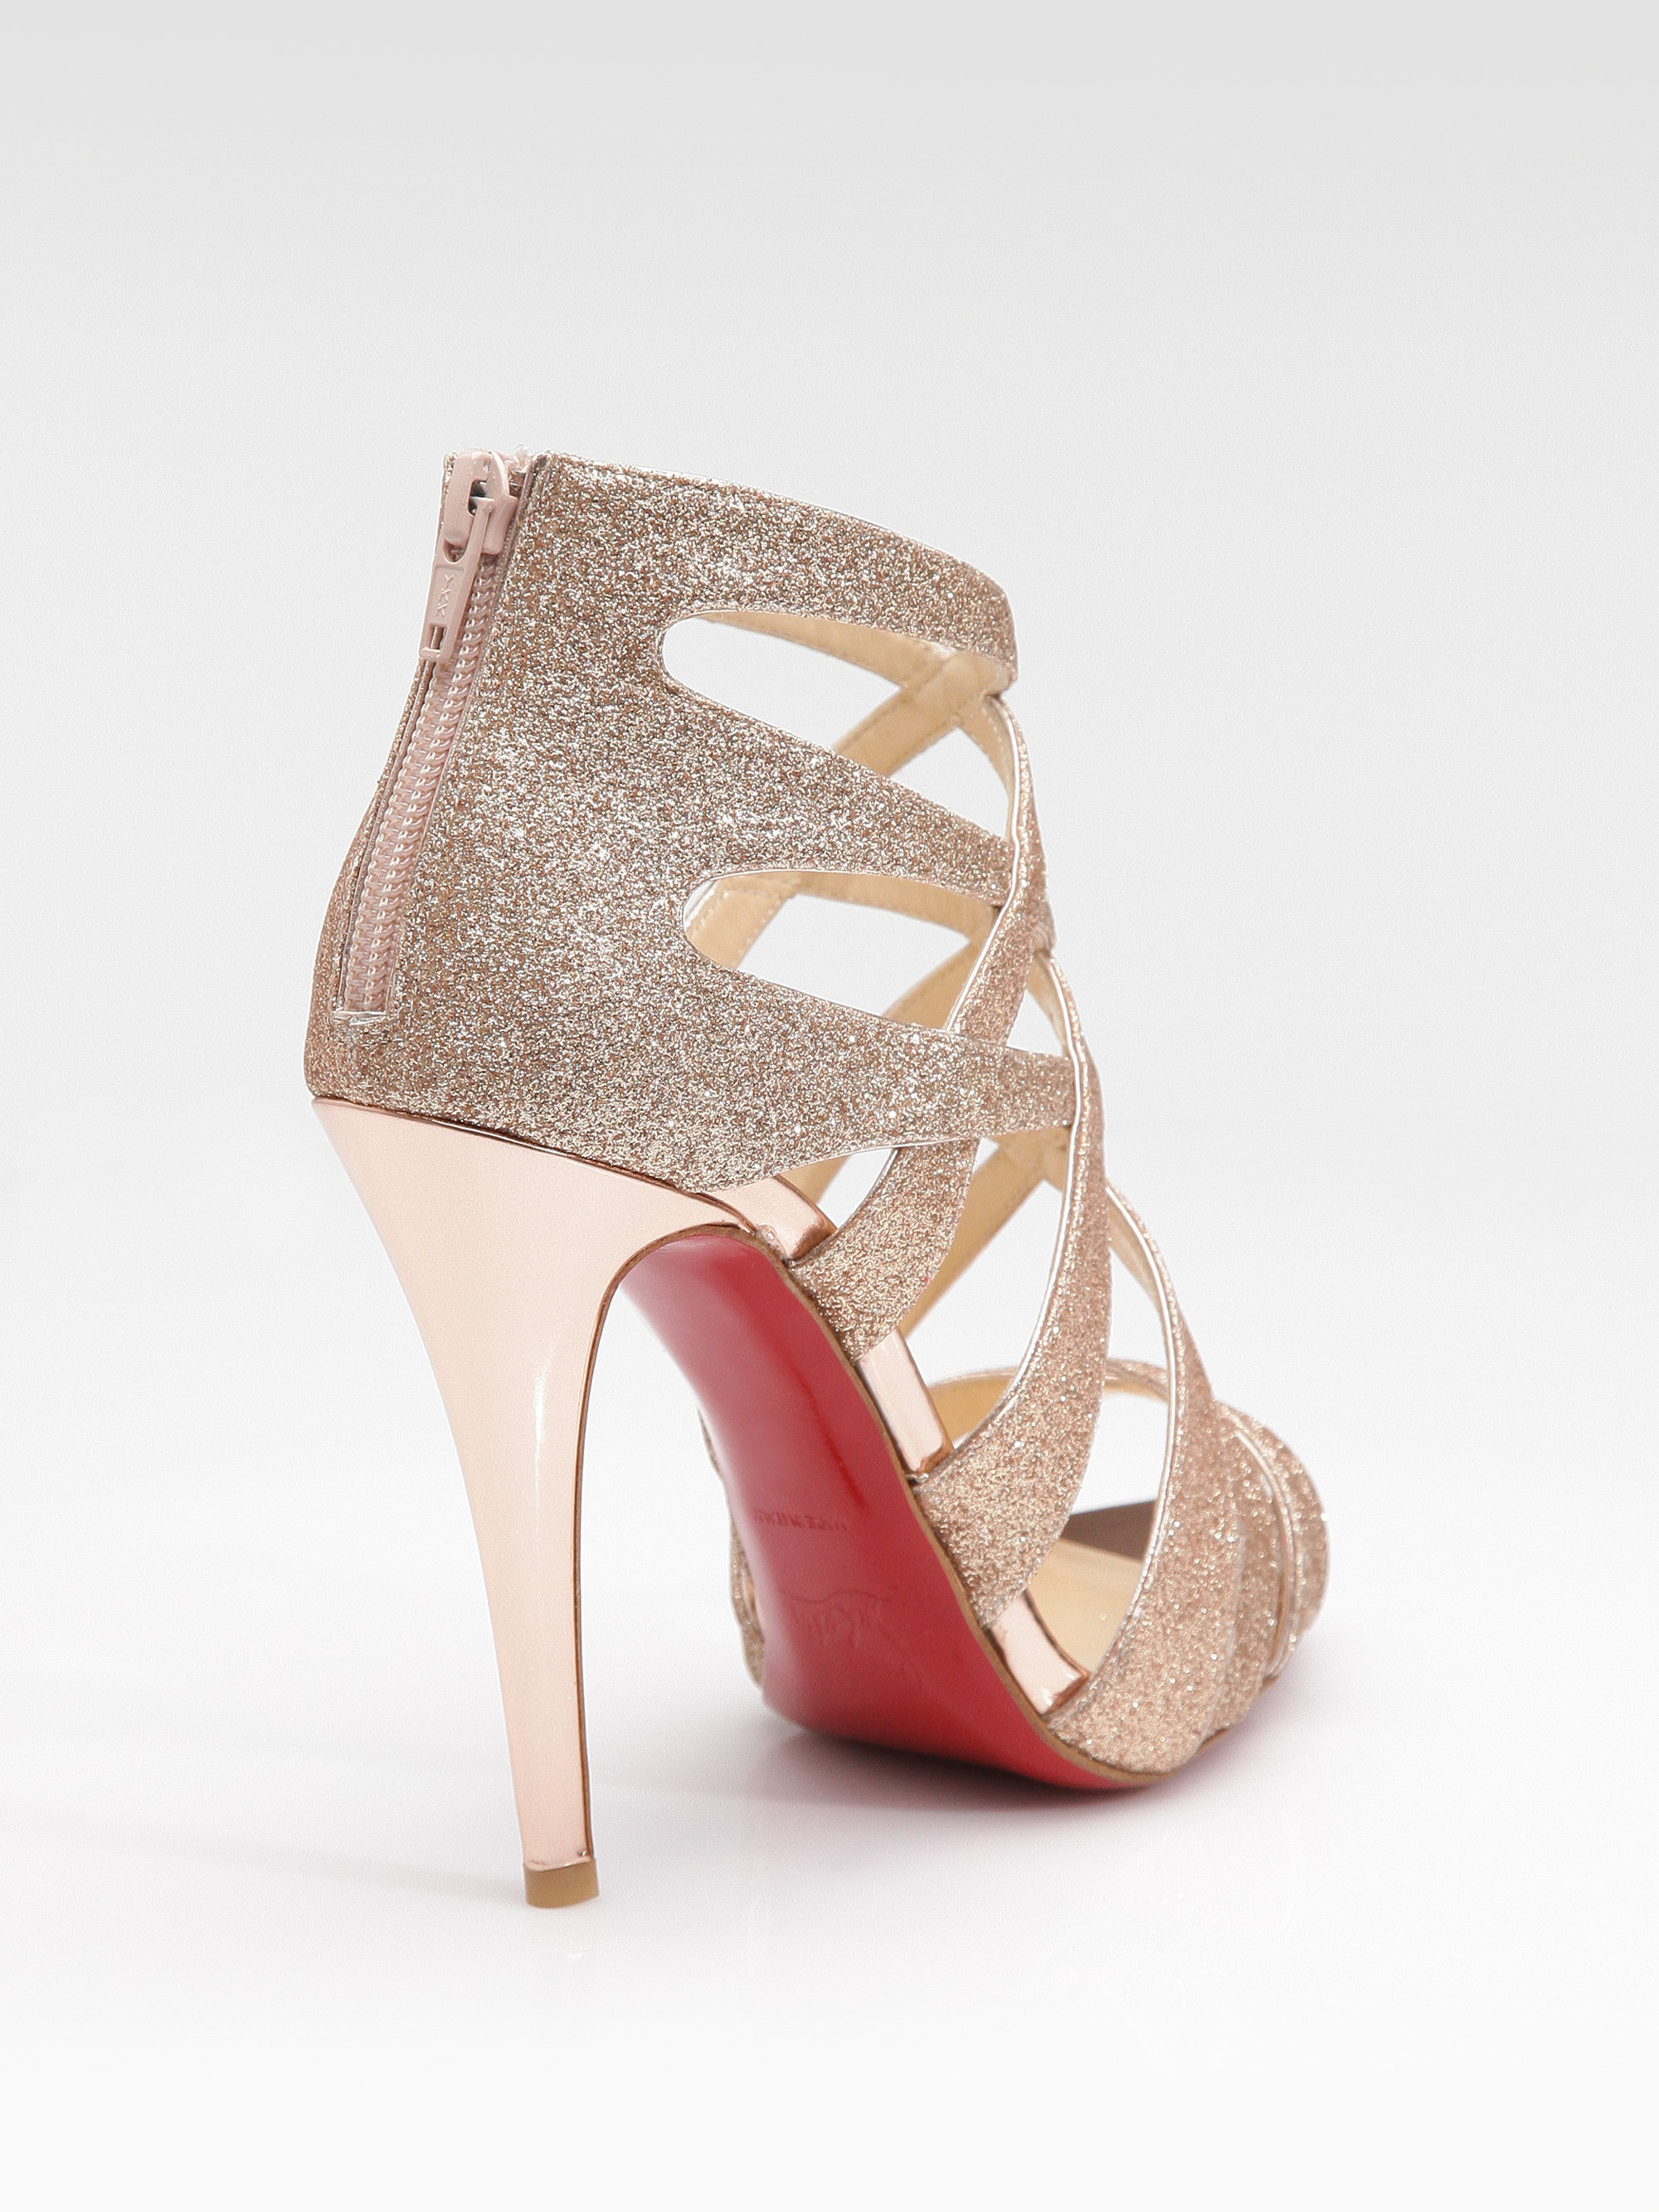 louboutin gold strappy heels